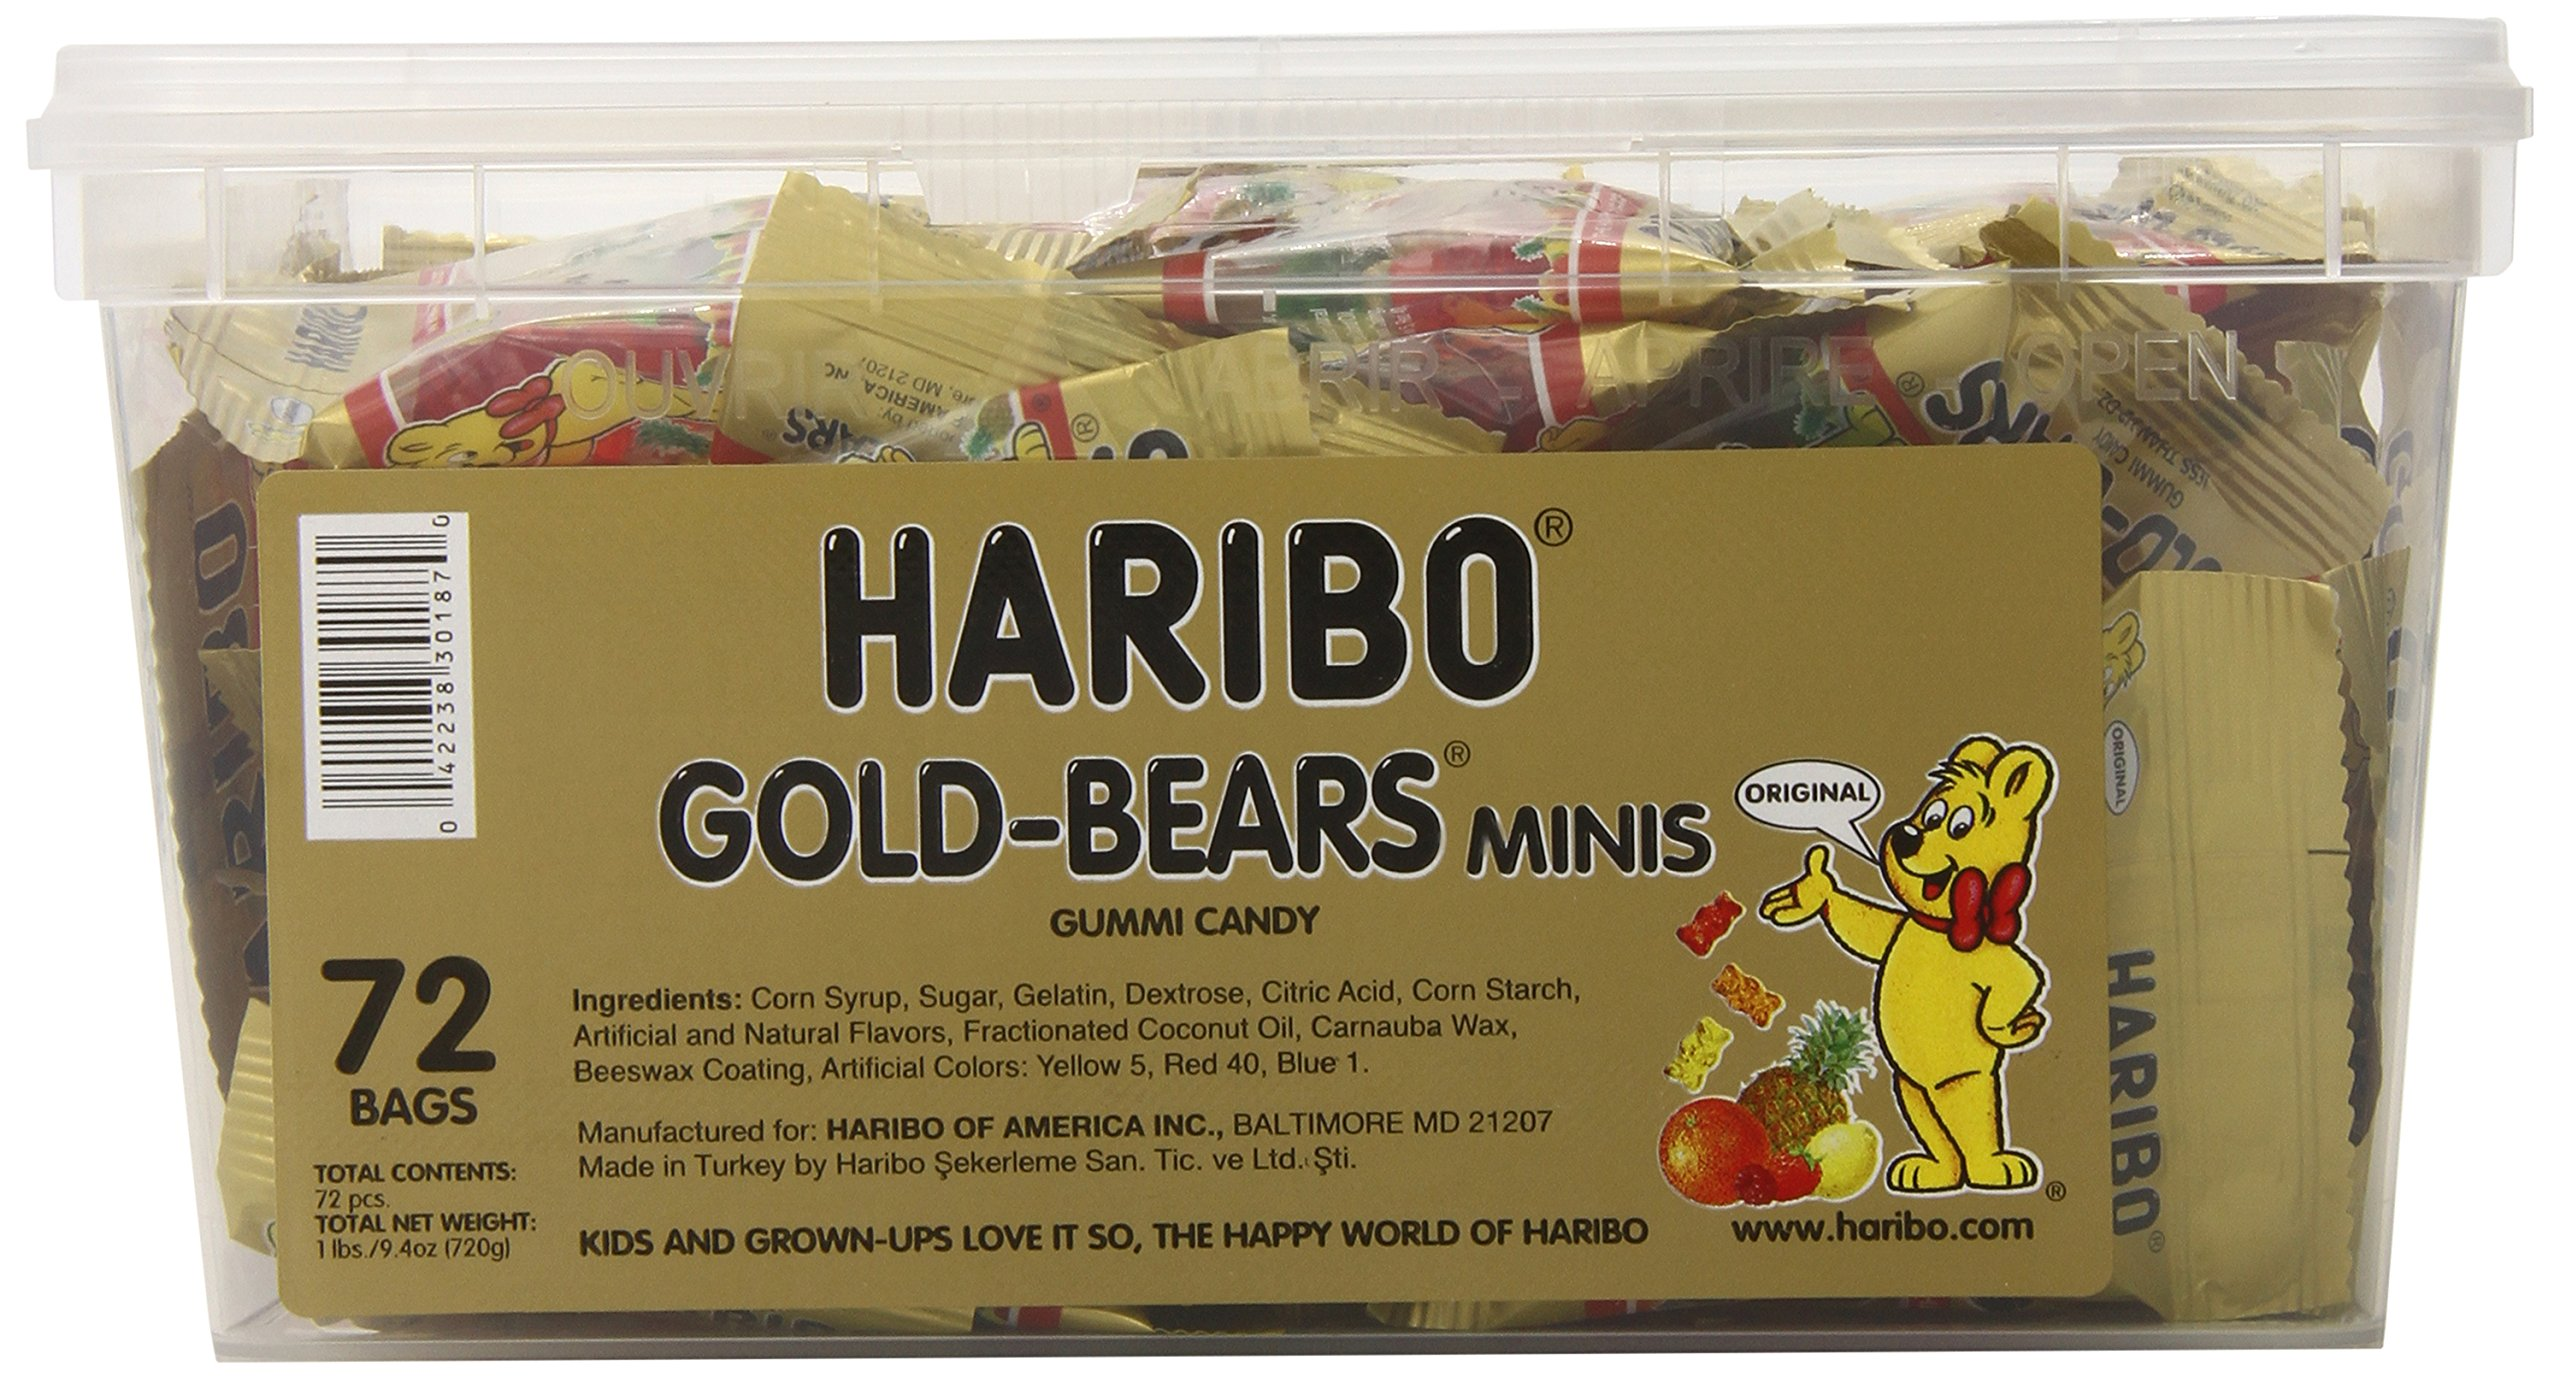 Haribo Gold-Bears Minis 72-Count 1 Pound 9.4 Ounce 1 Pack 18